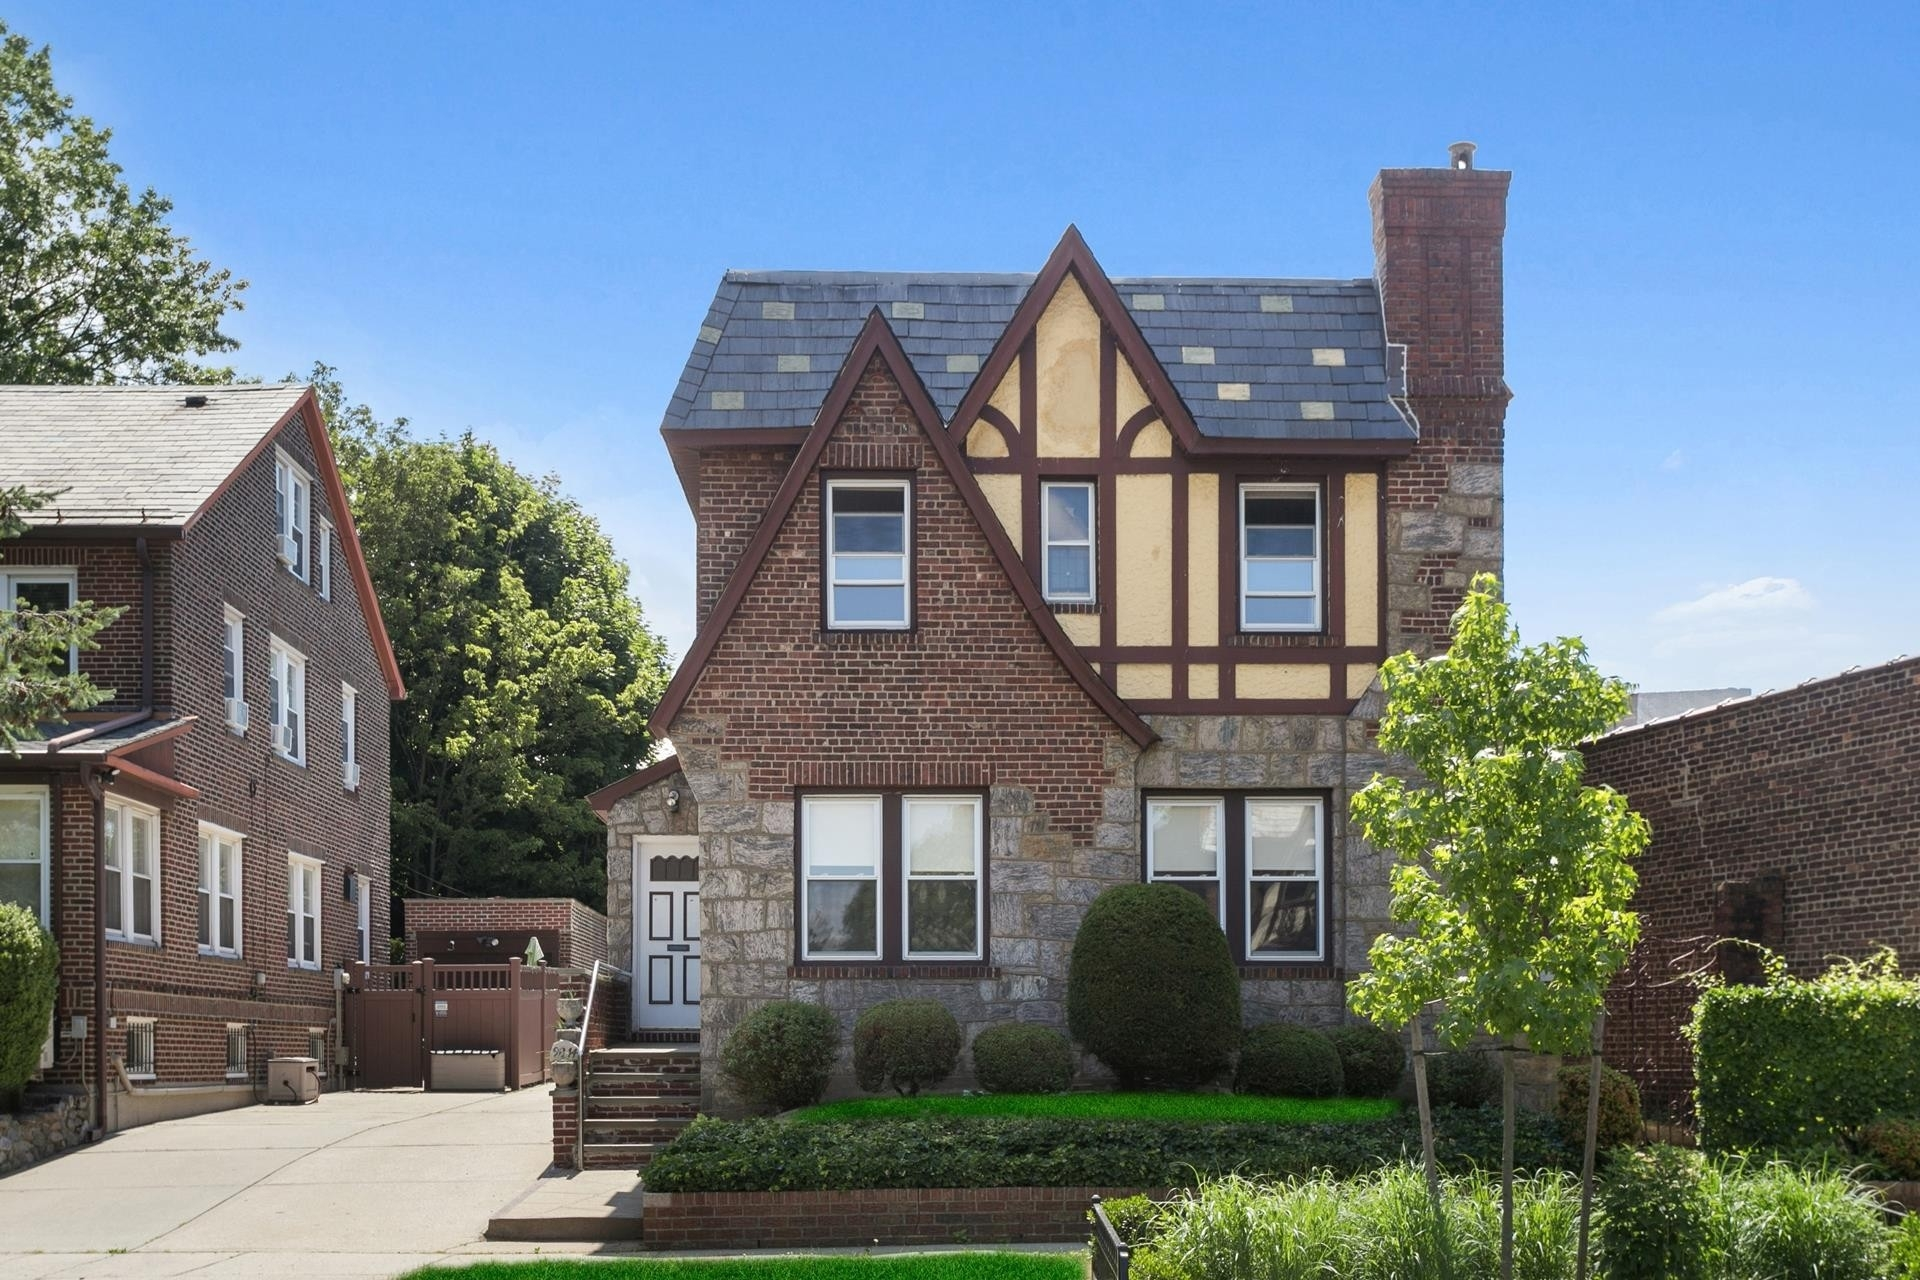 Multi Family Townhouse for Sale at Forest Hills, Queens, NY 11375